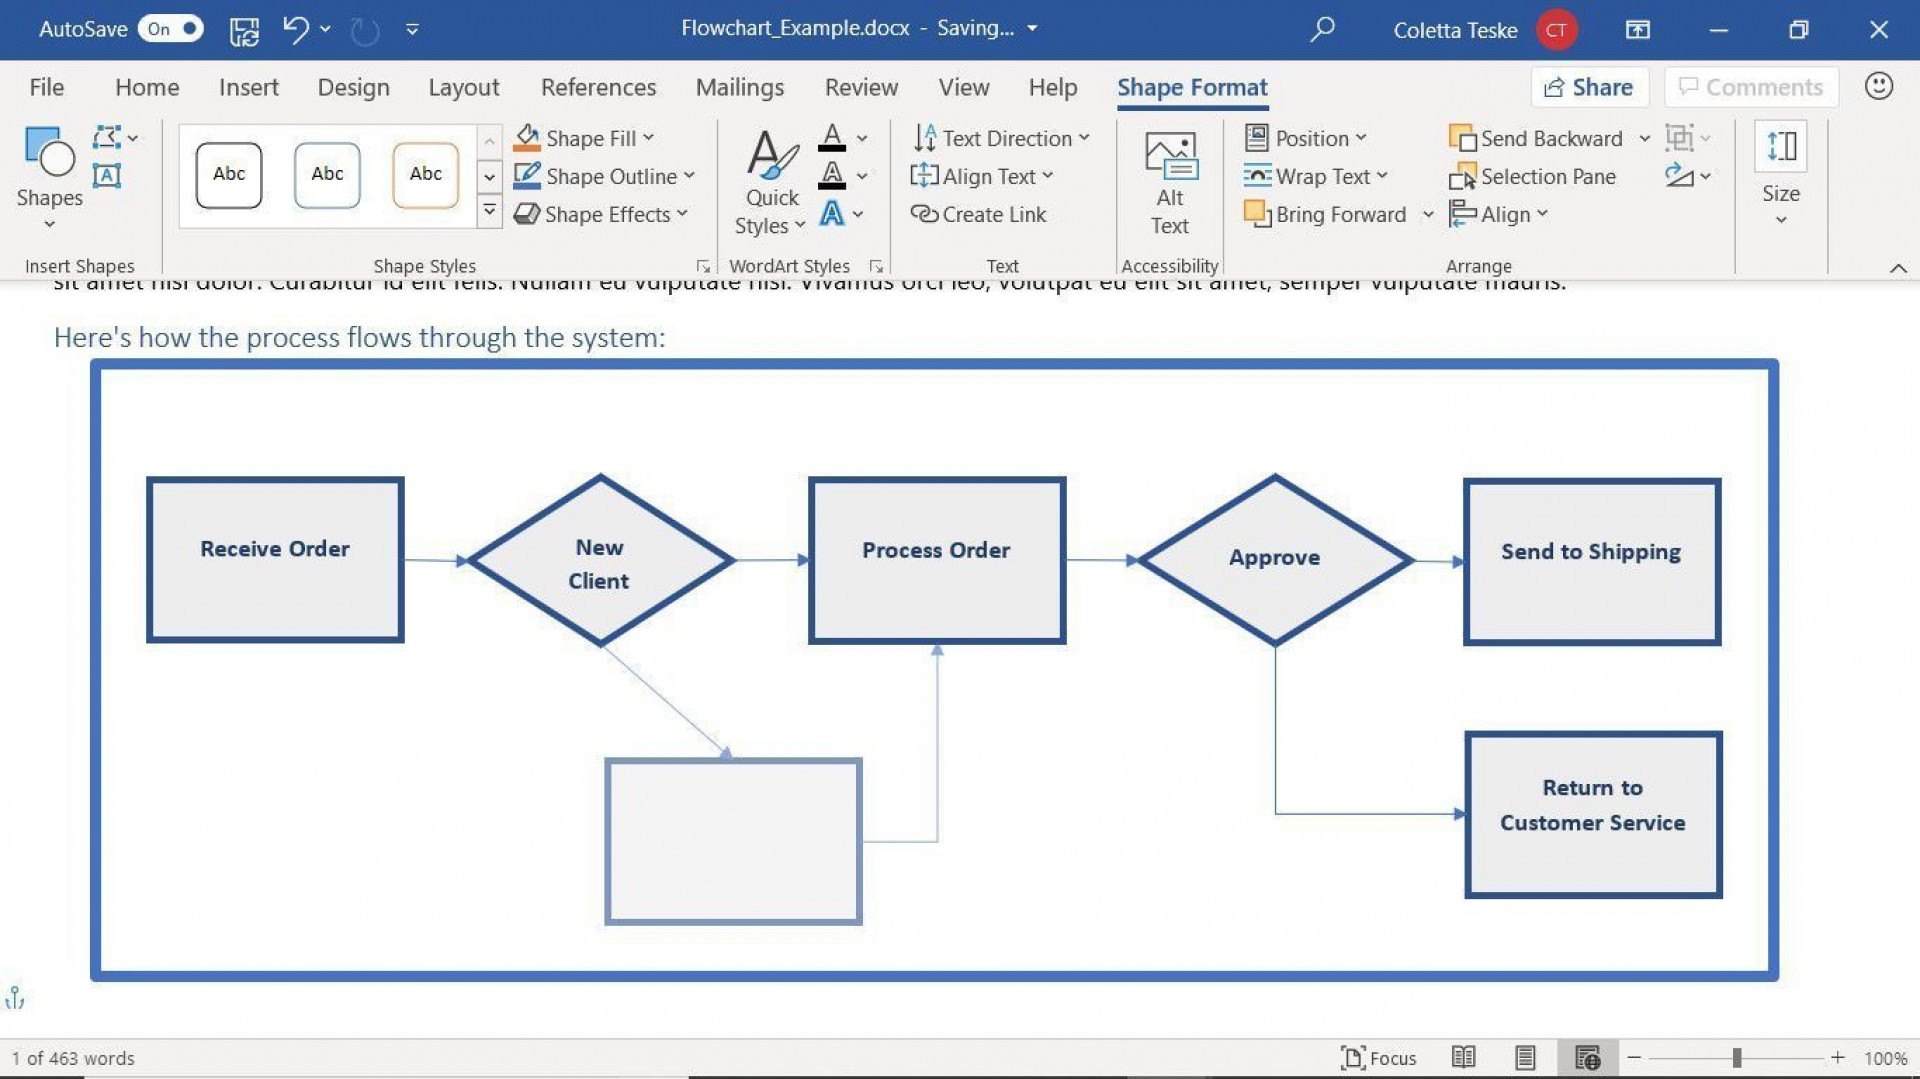 002 Stunning Free Flowchart Template Excel 2010 Image 1920